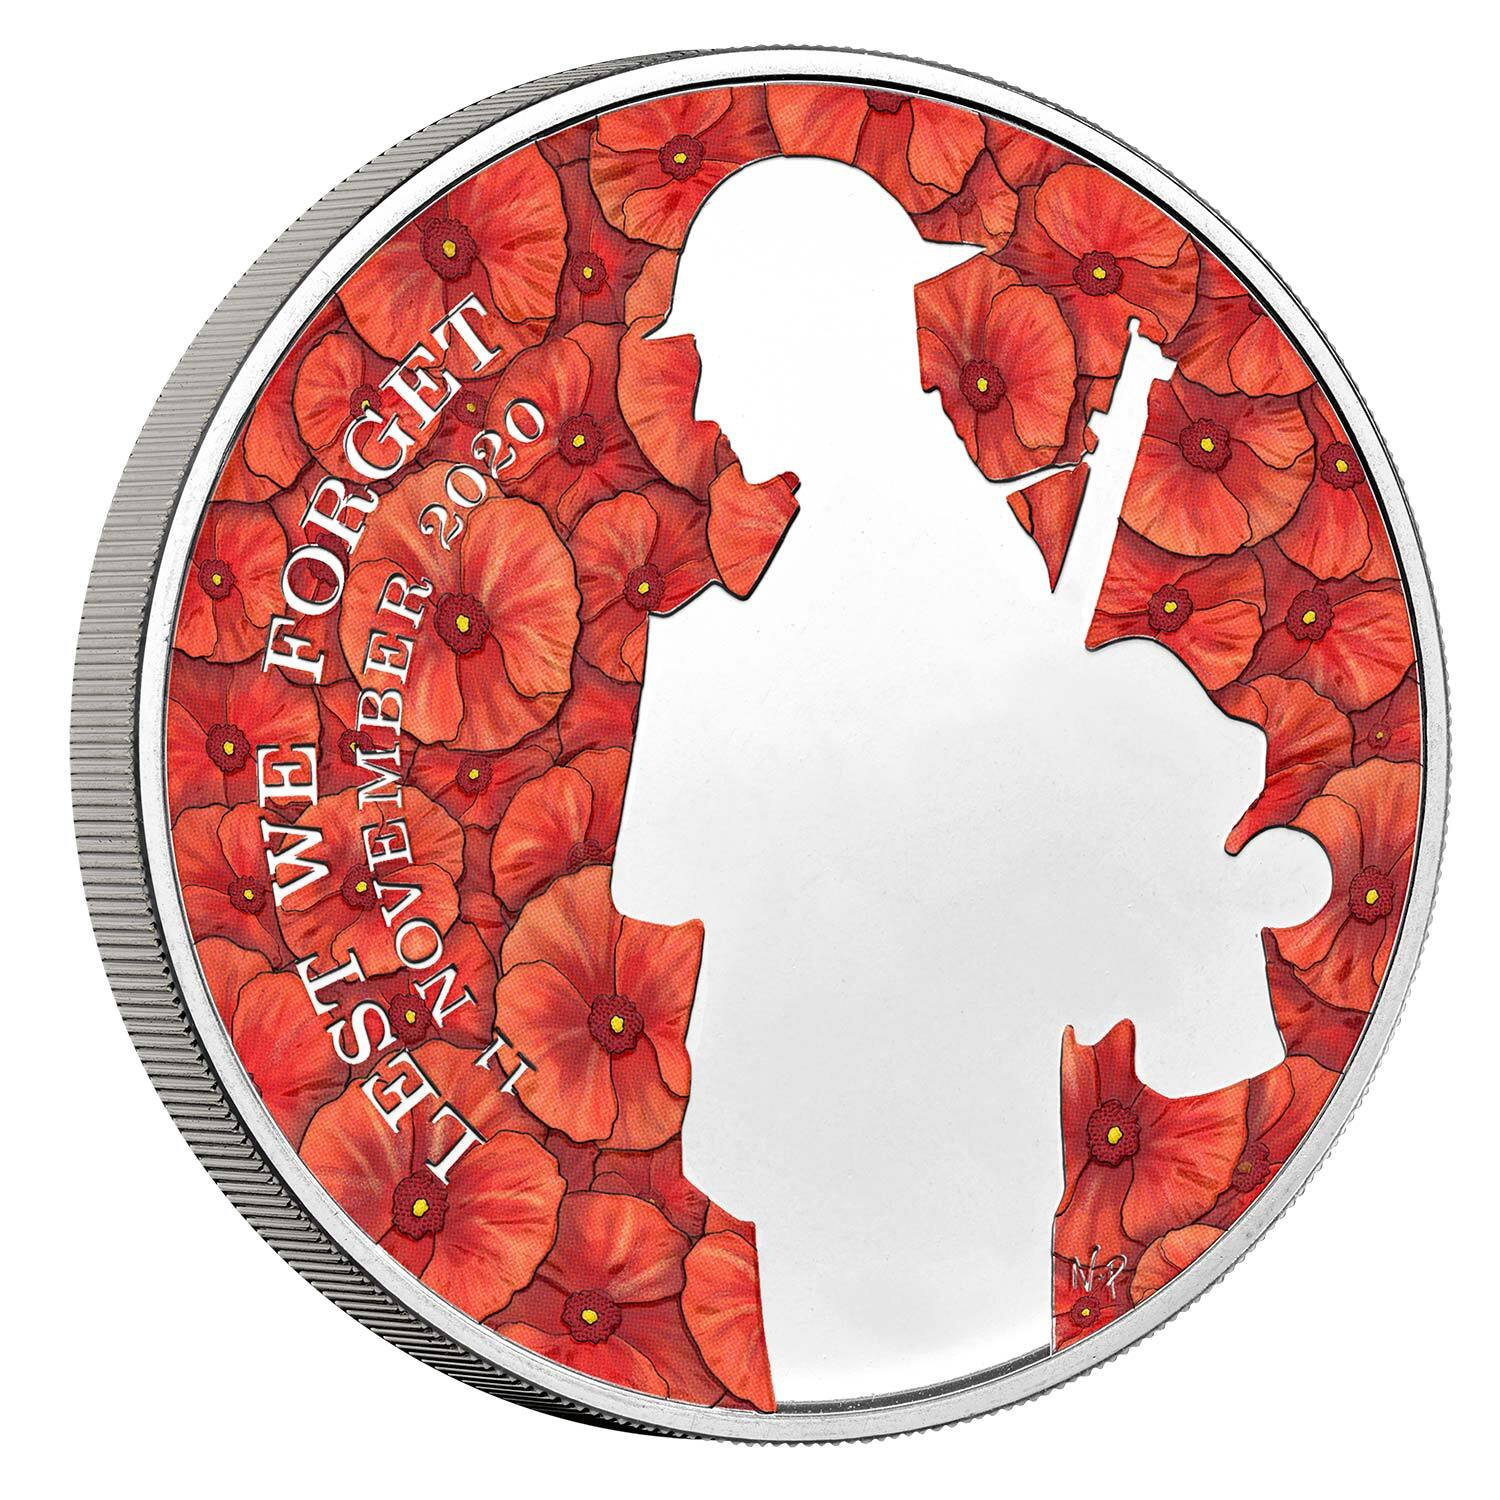 2020 £5 Remembrance Day Brilliant UNC Coin